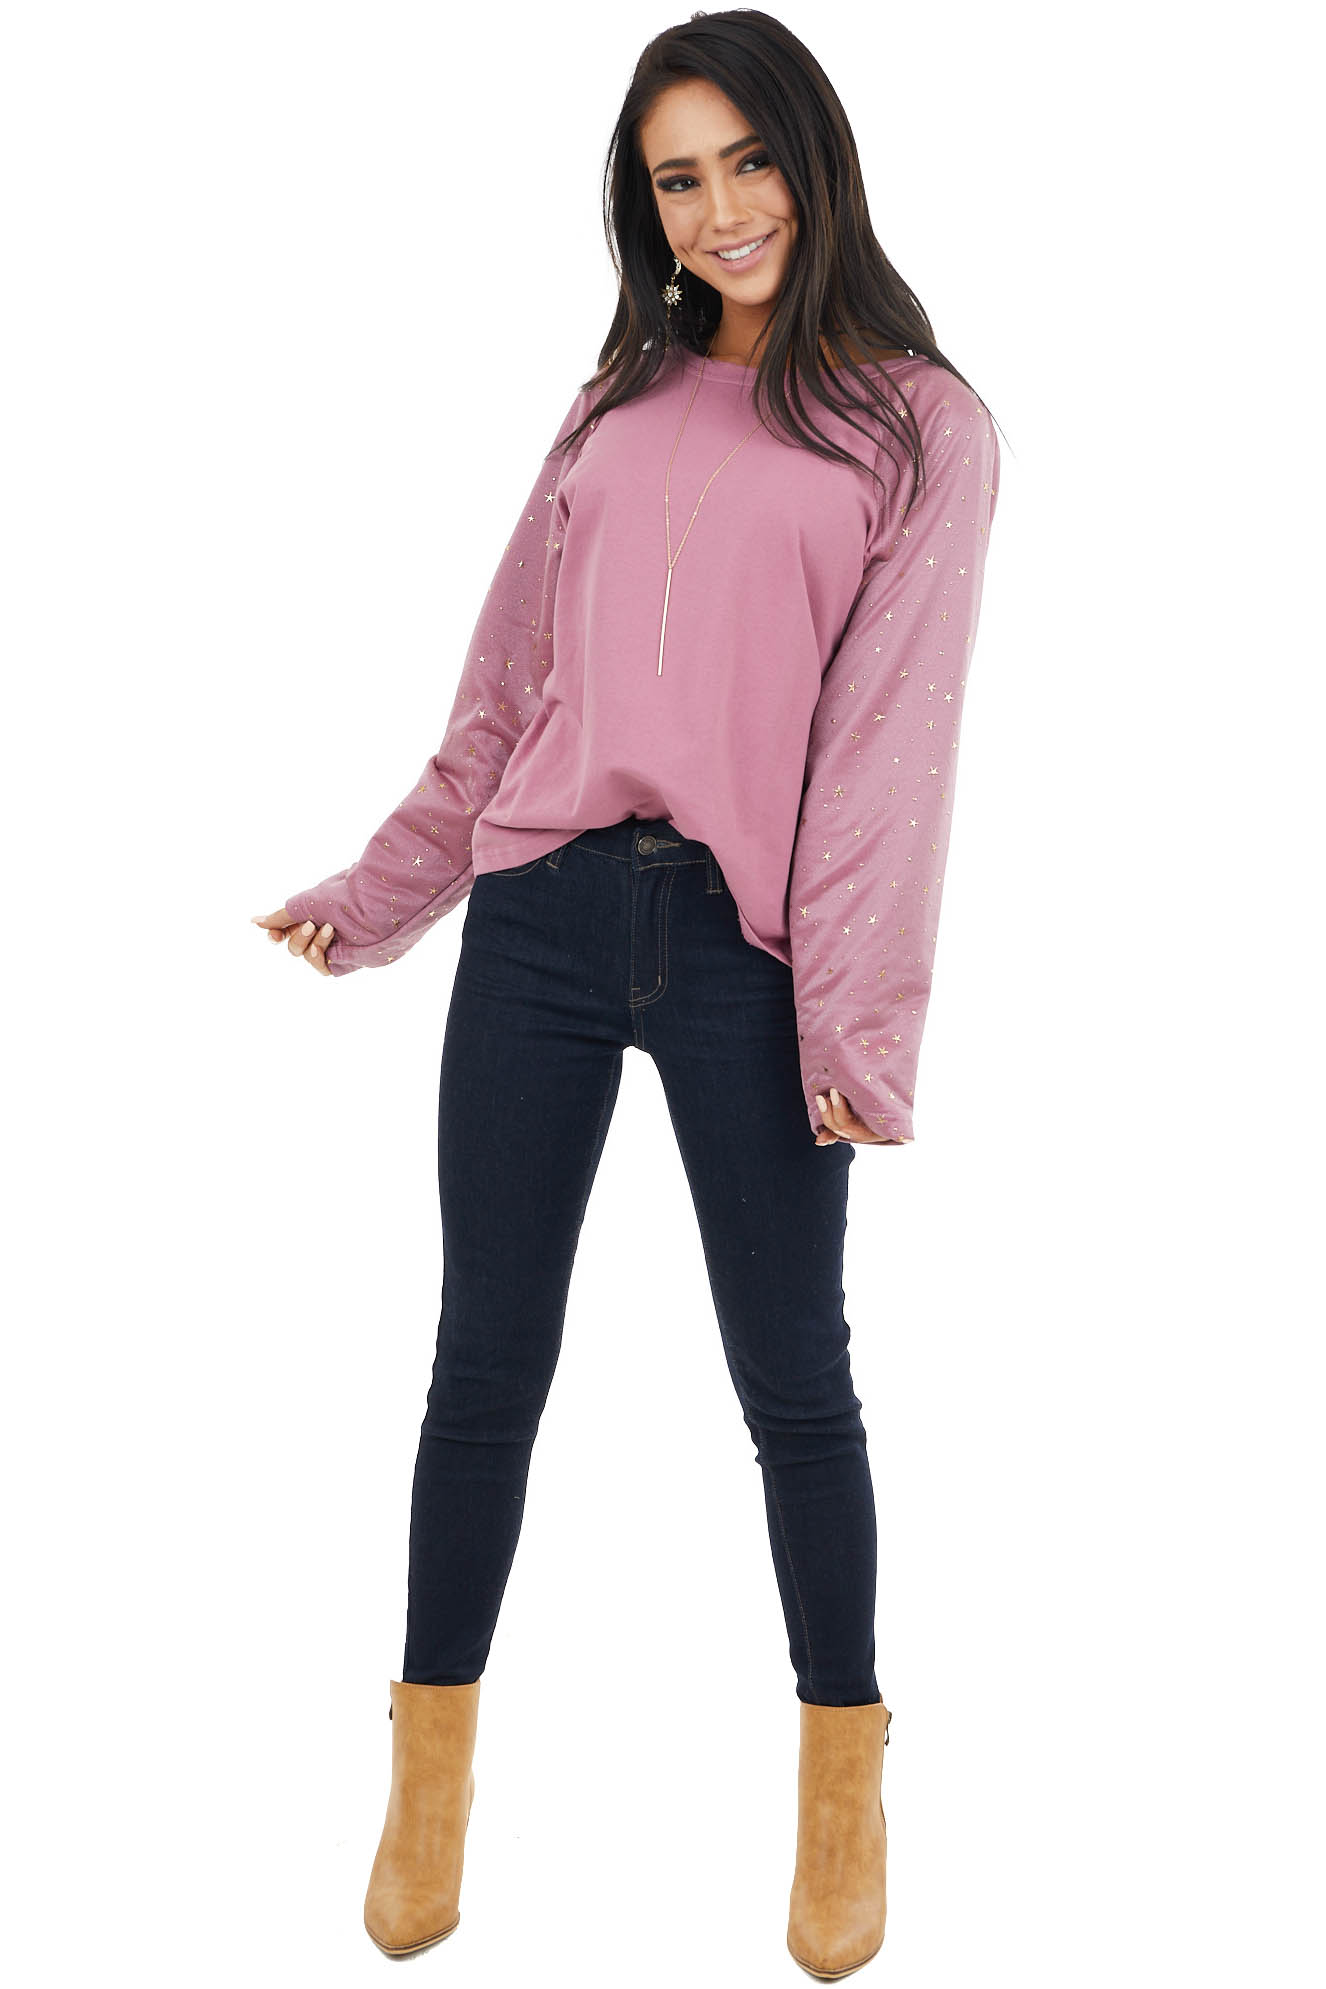 Berry Pink Top with Mesh Long Sleeves and Gold Star Details